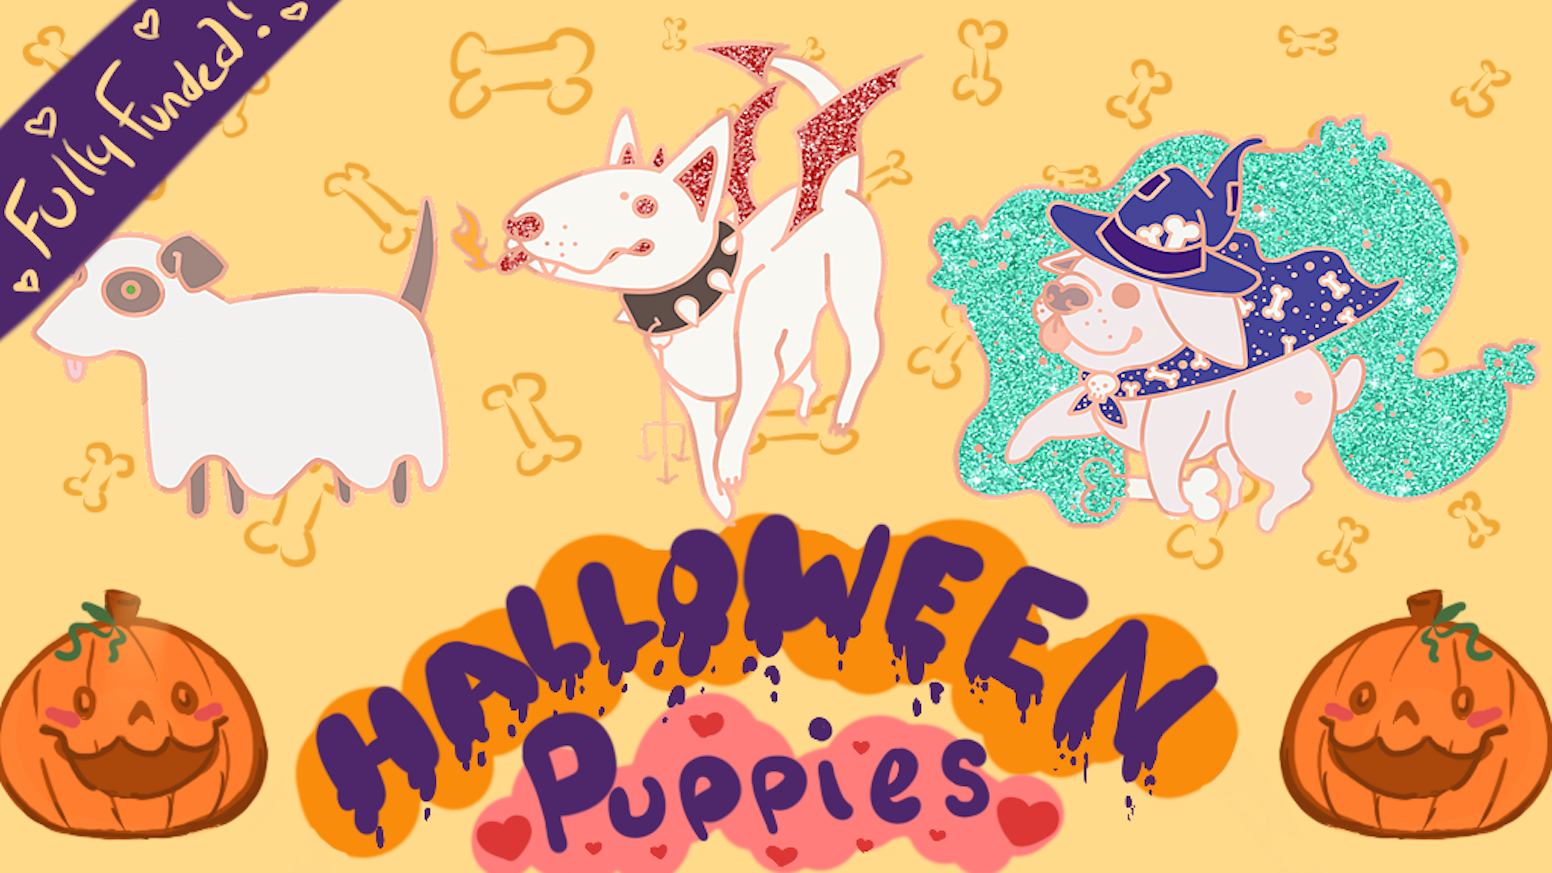 Halloween Puppies An Enamel Pin Set By Ari Kavana Kickstarter